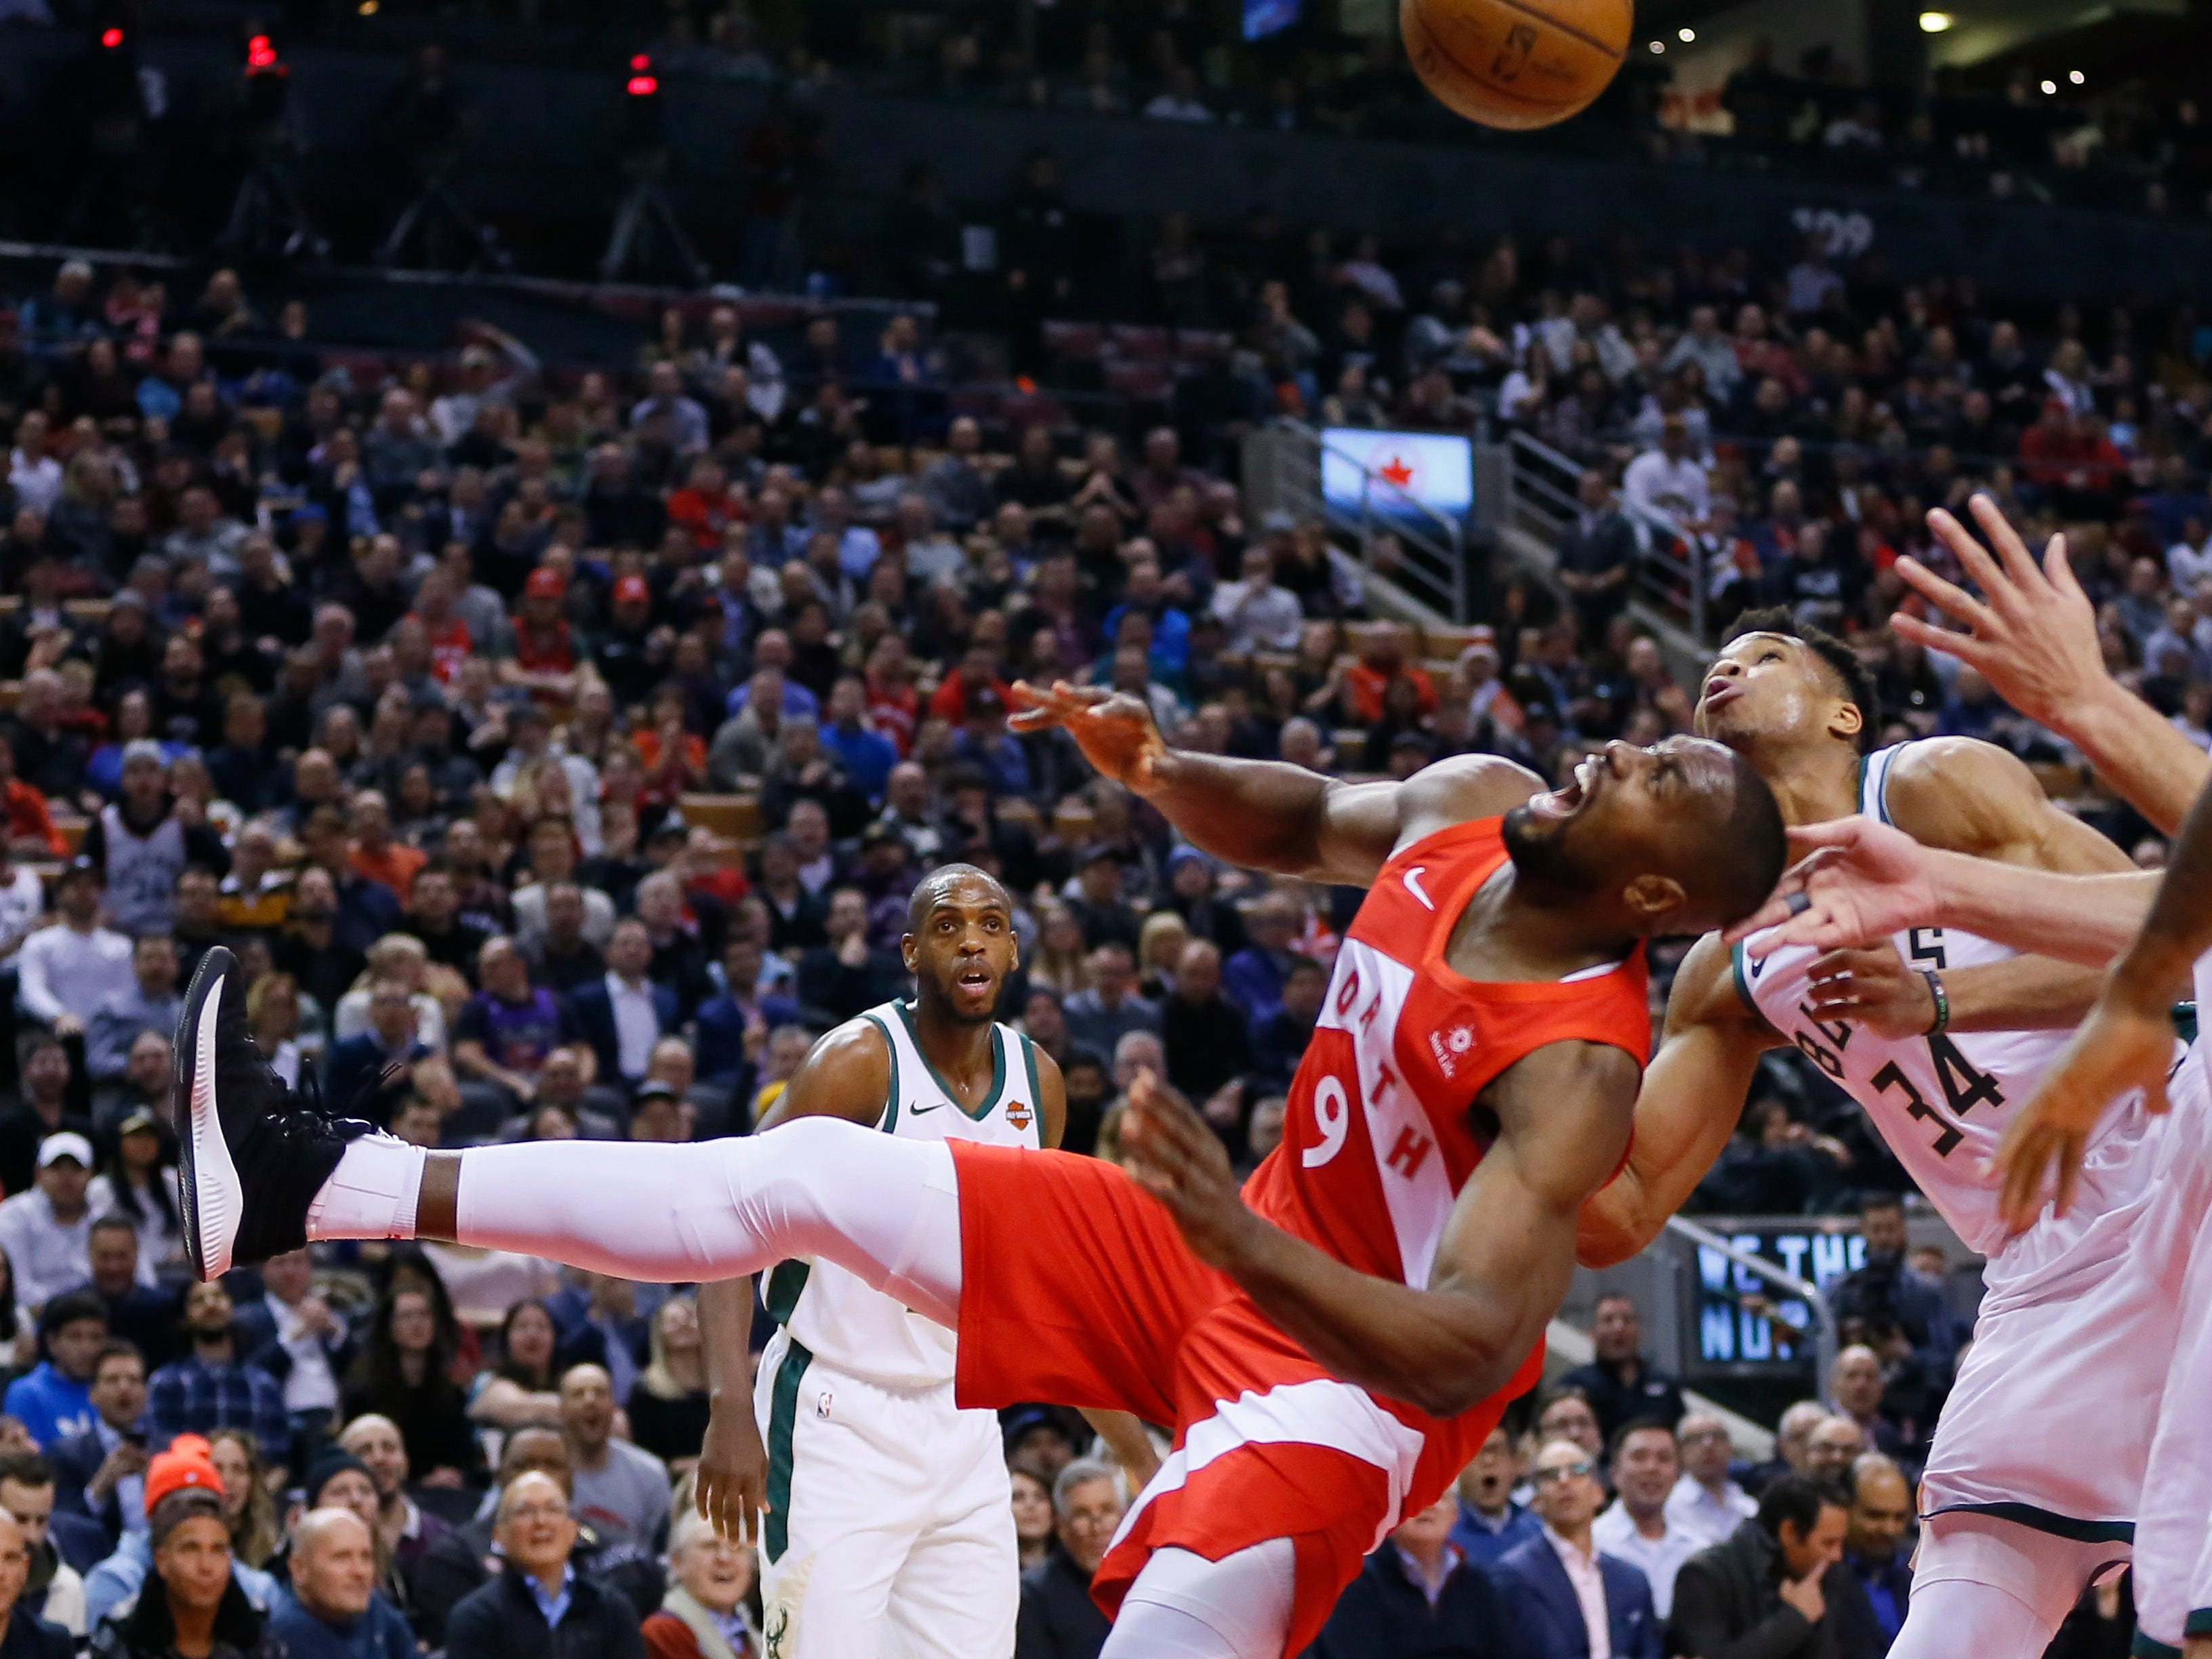 Raptors forward Serge Ibaka and Bucks forward Giannis Antetokounmpo battle for a rebound during the first half Thursday night.